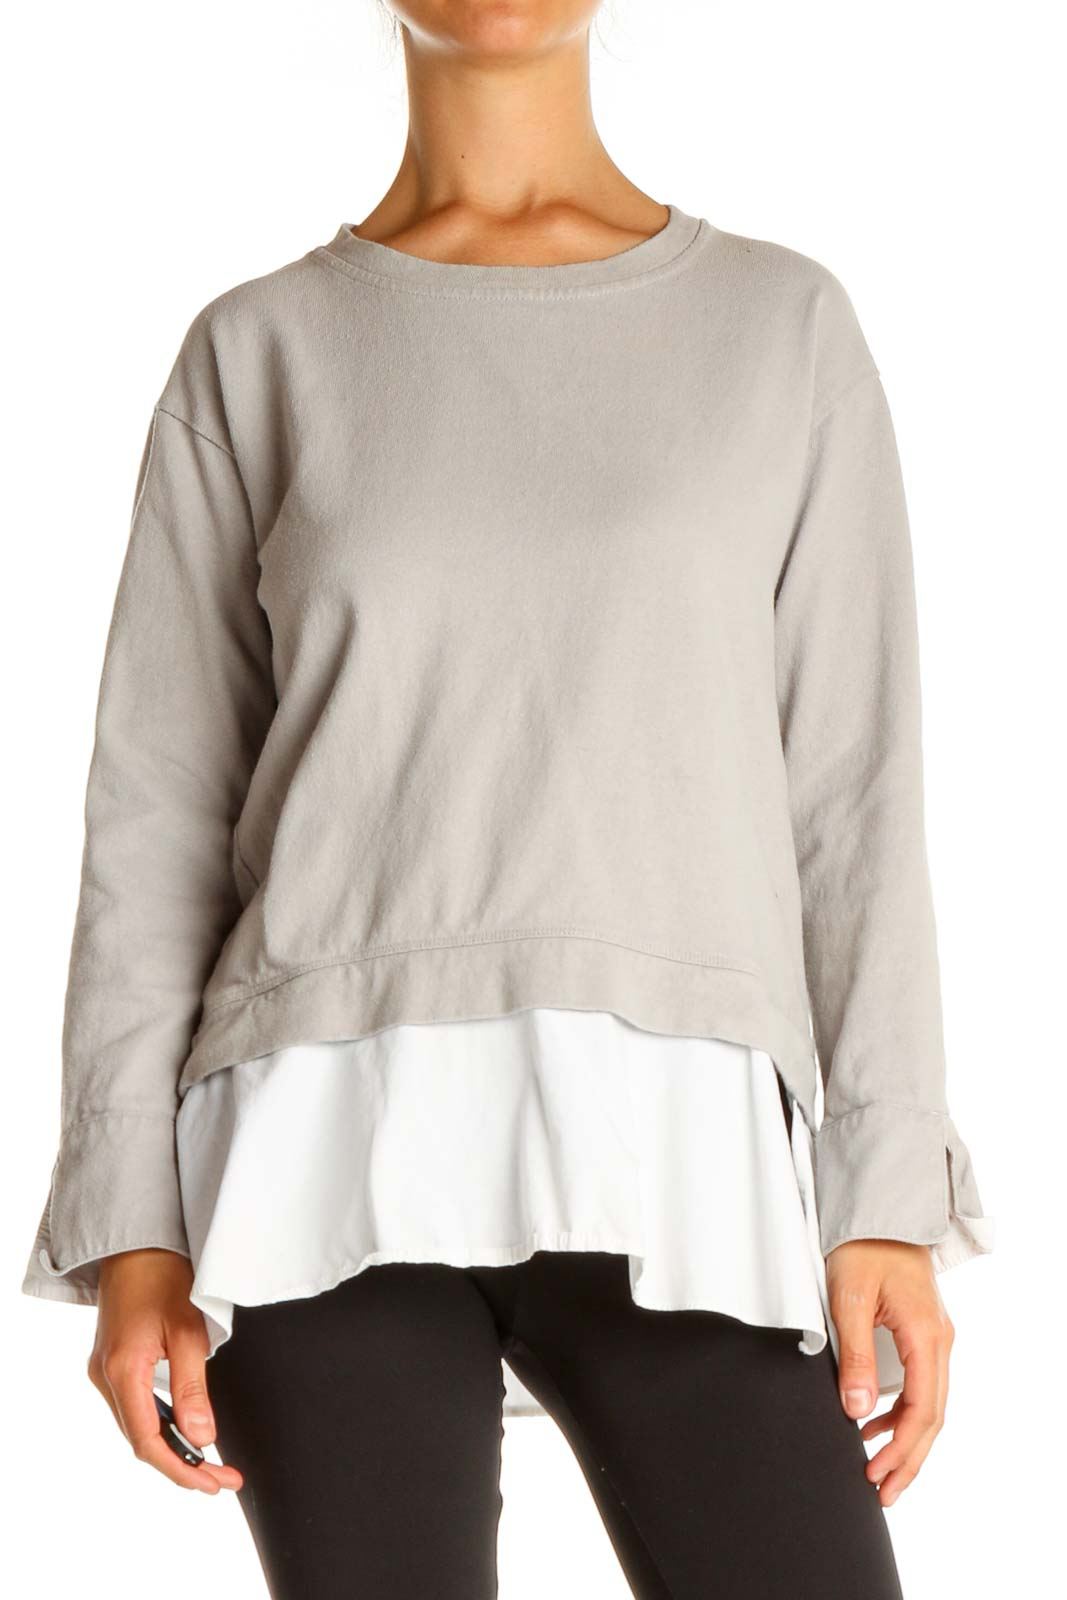 Gray Solid Classic Sweater Front